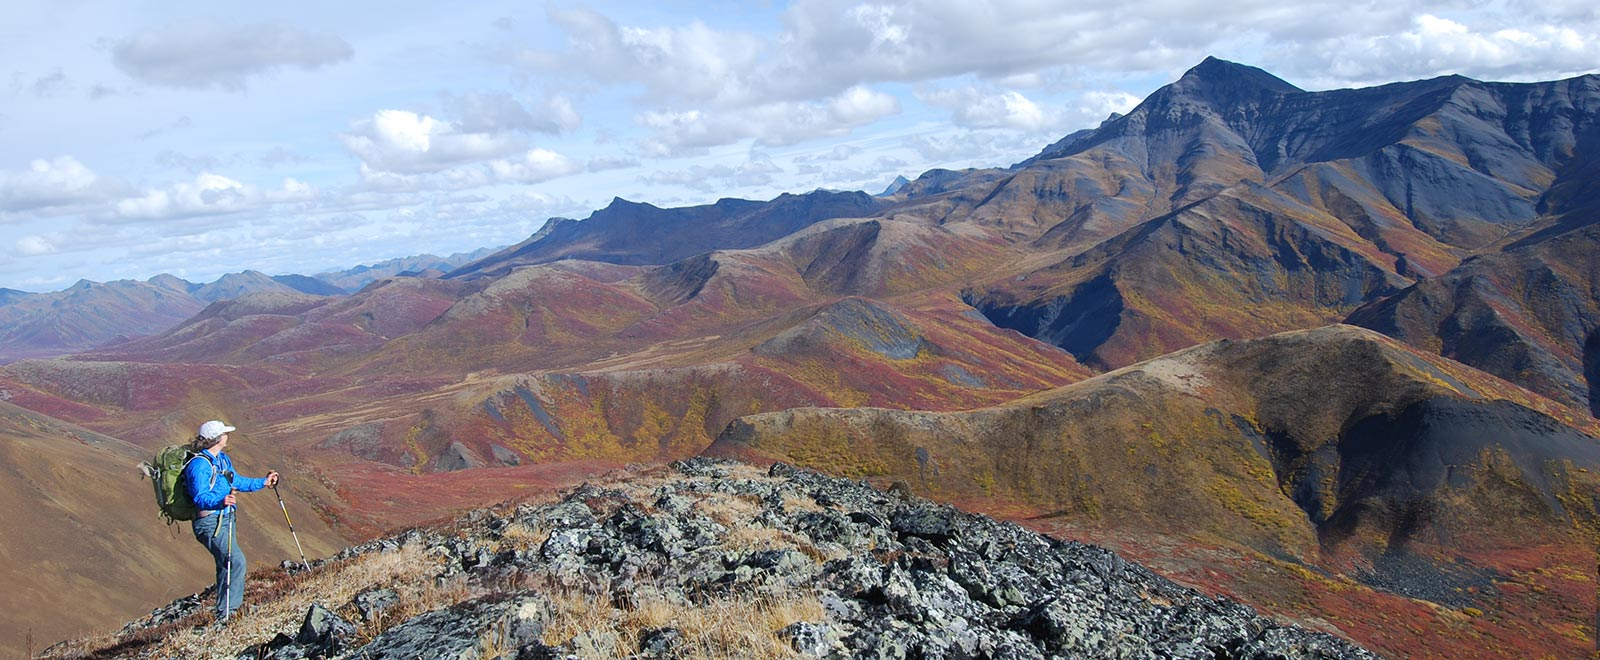 hiking-with-view-yukon-slide